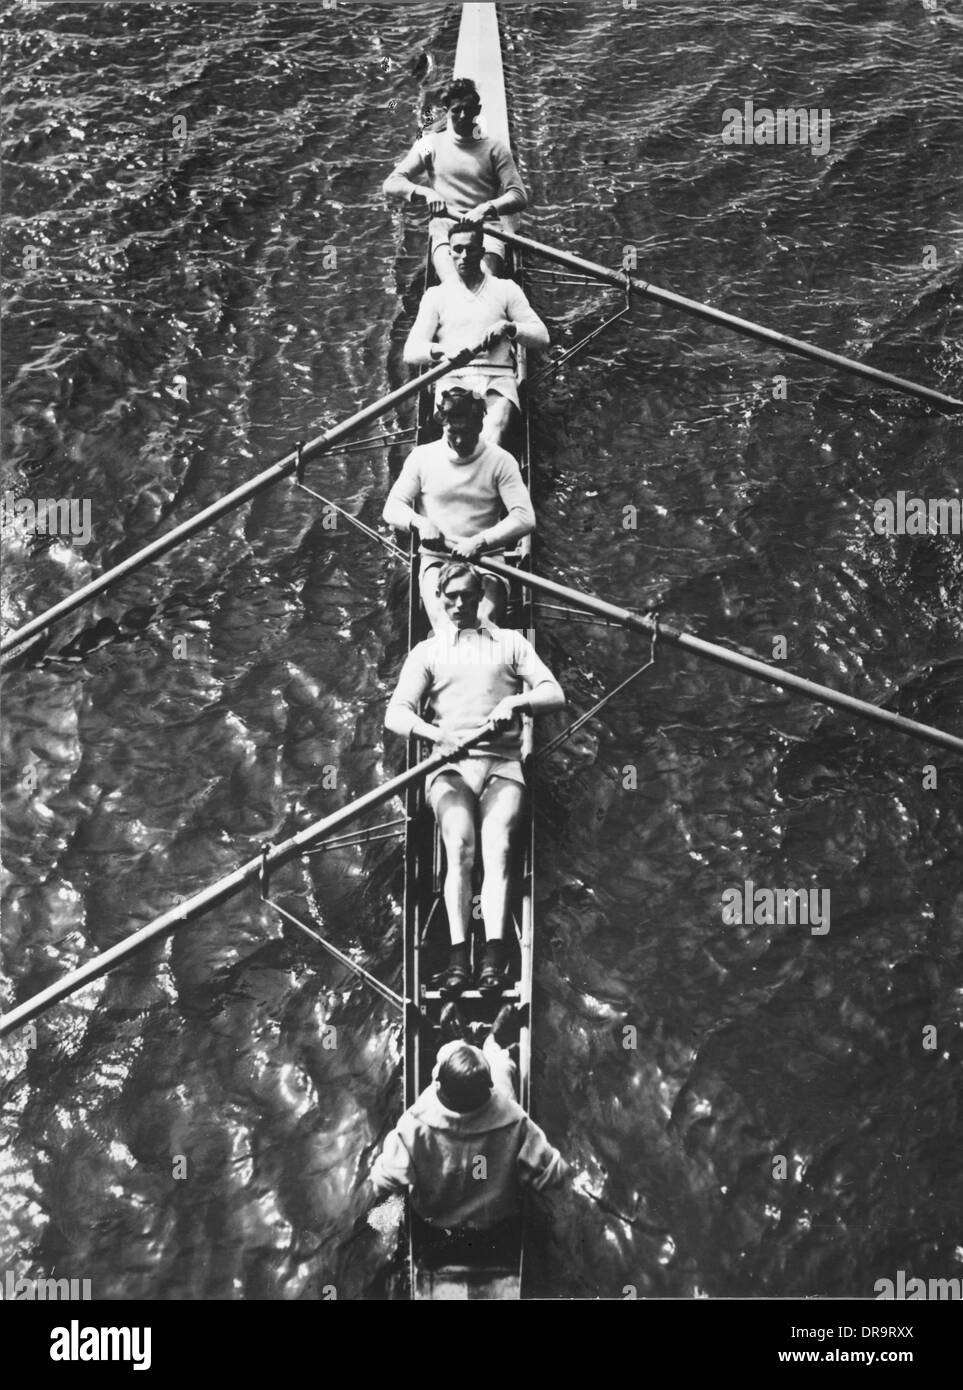 German Olympic rowing team 1932 - Stock Image